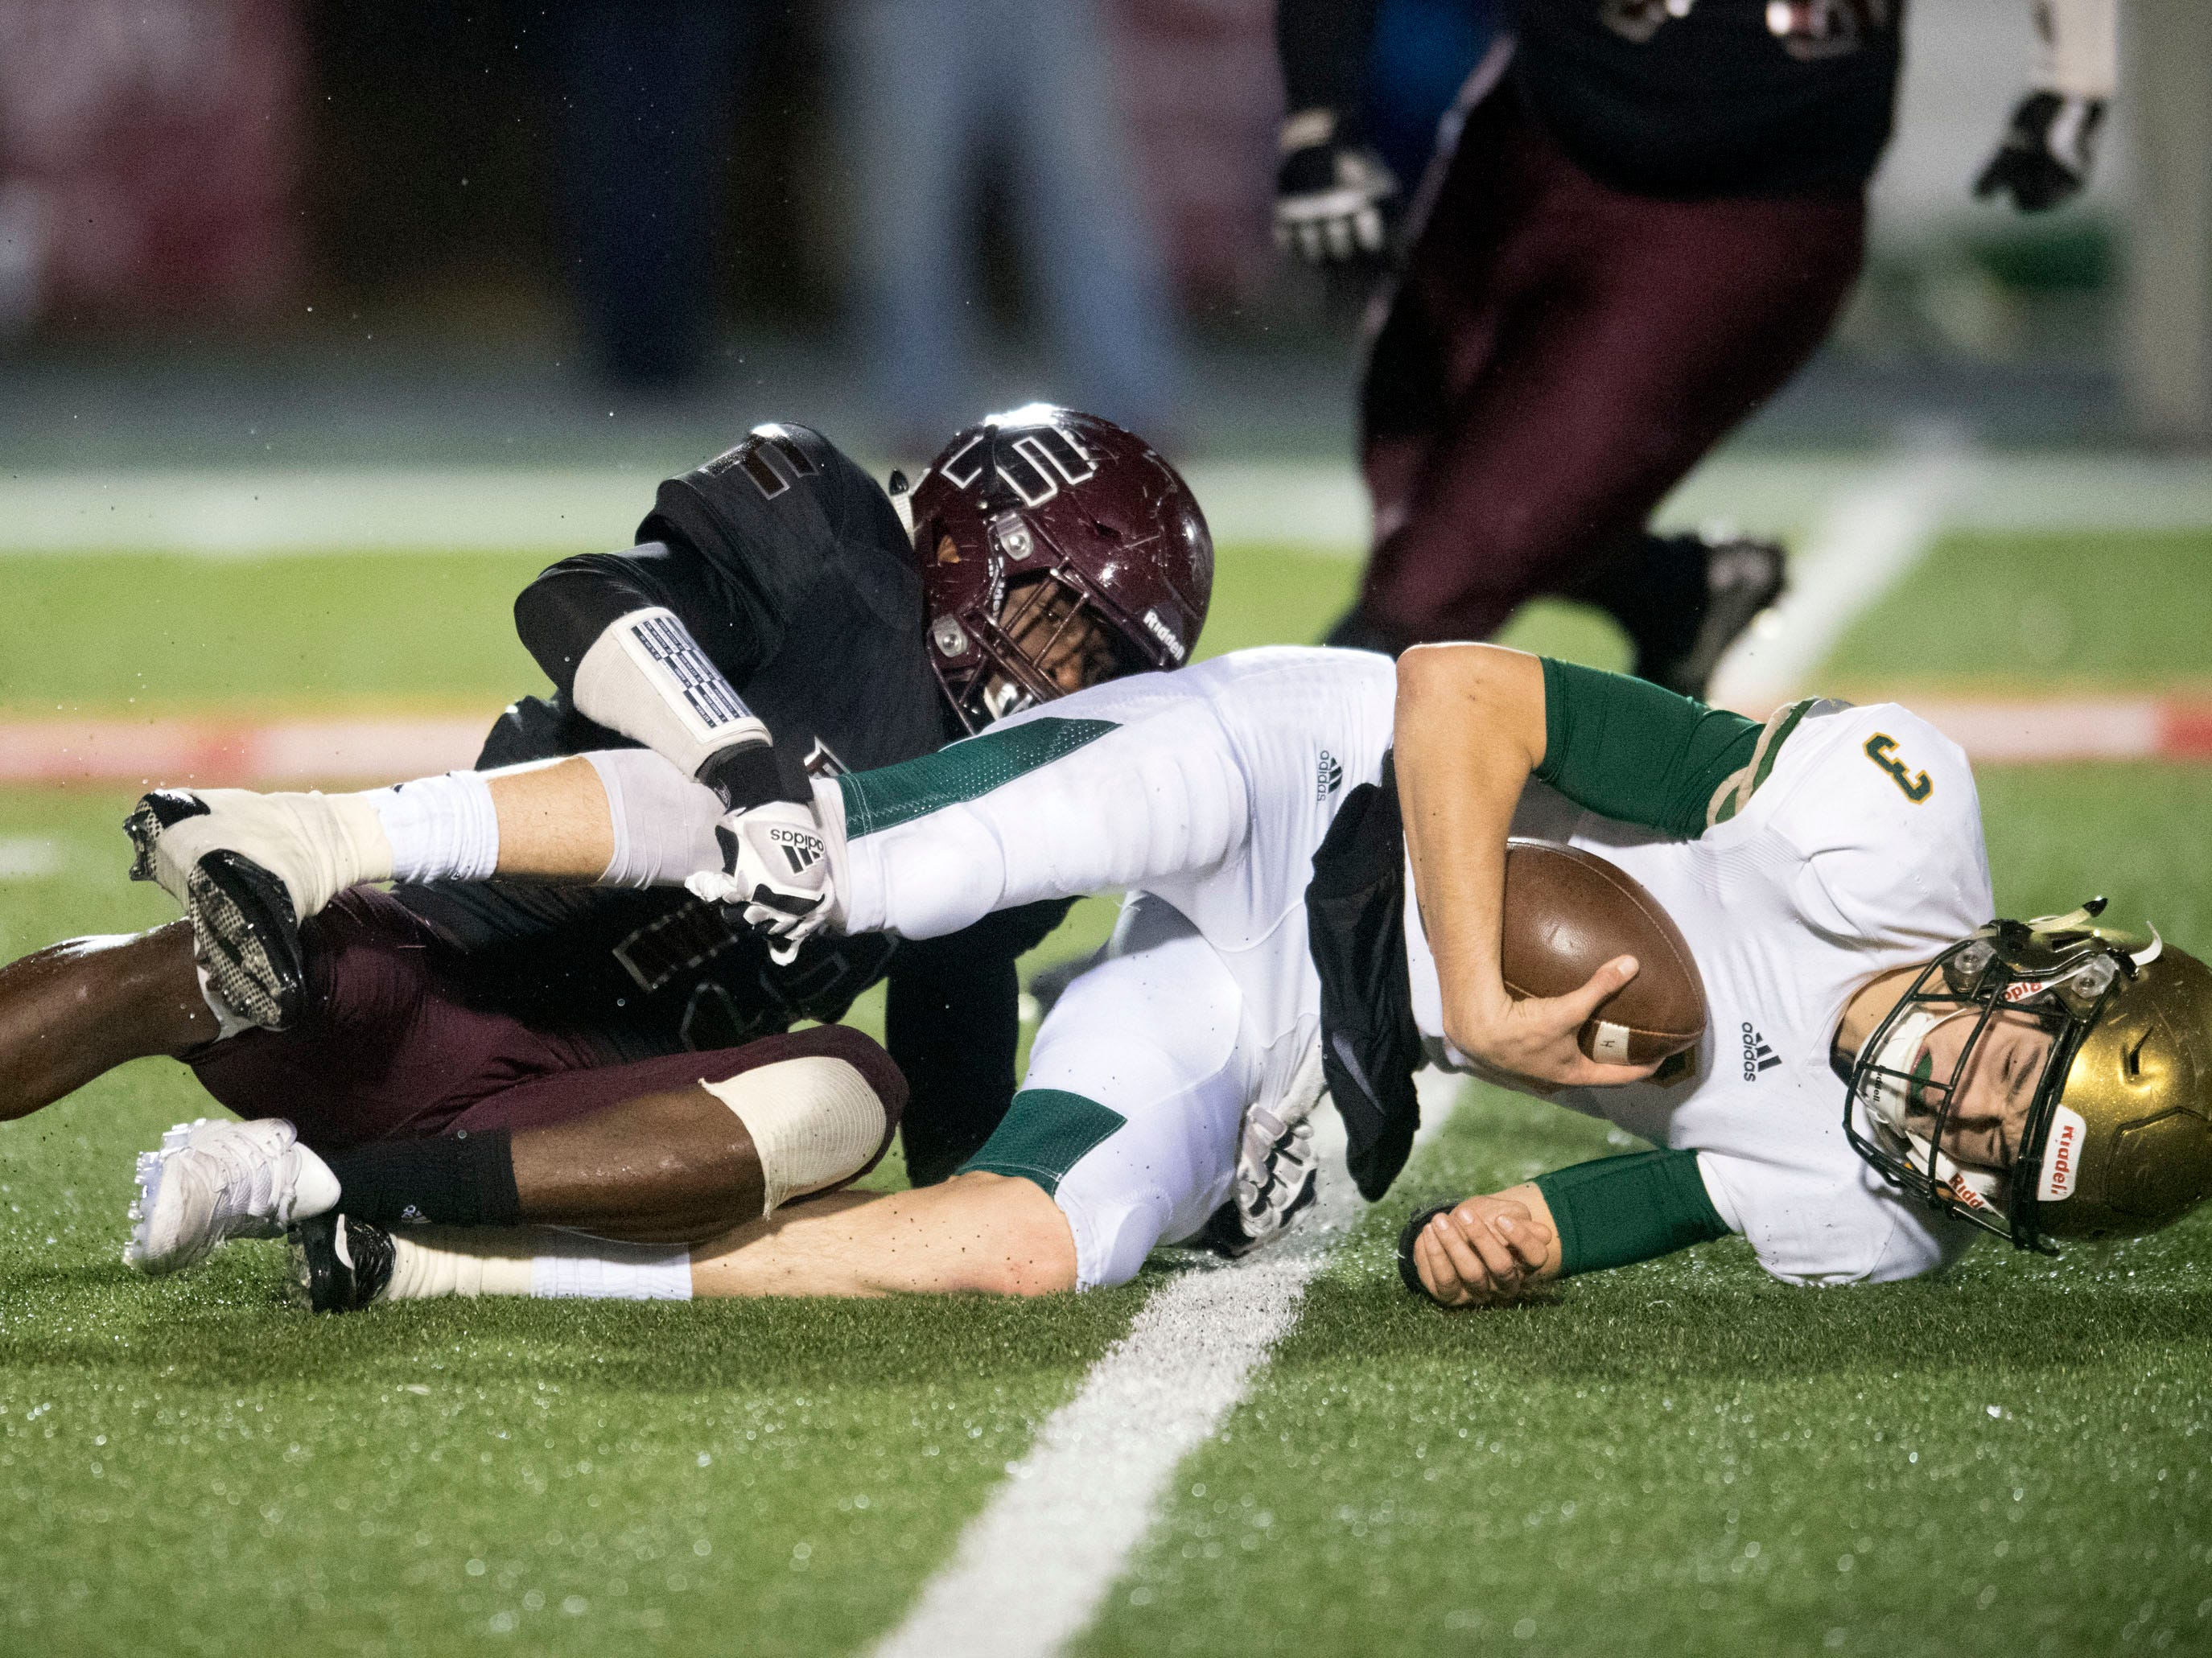 Knoxville Catholic's Jack Jancek (3) is sacked by Fulton's Elijah Davis (19). Knoxville Catholic beat Fulton, 28-25 in the second round of the Class 5A playoffs on Friday, November 9, 2018.